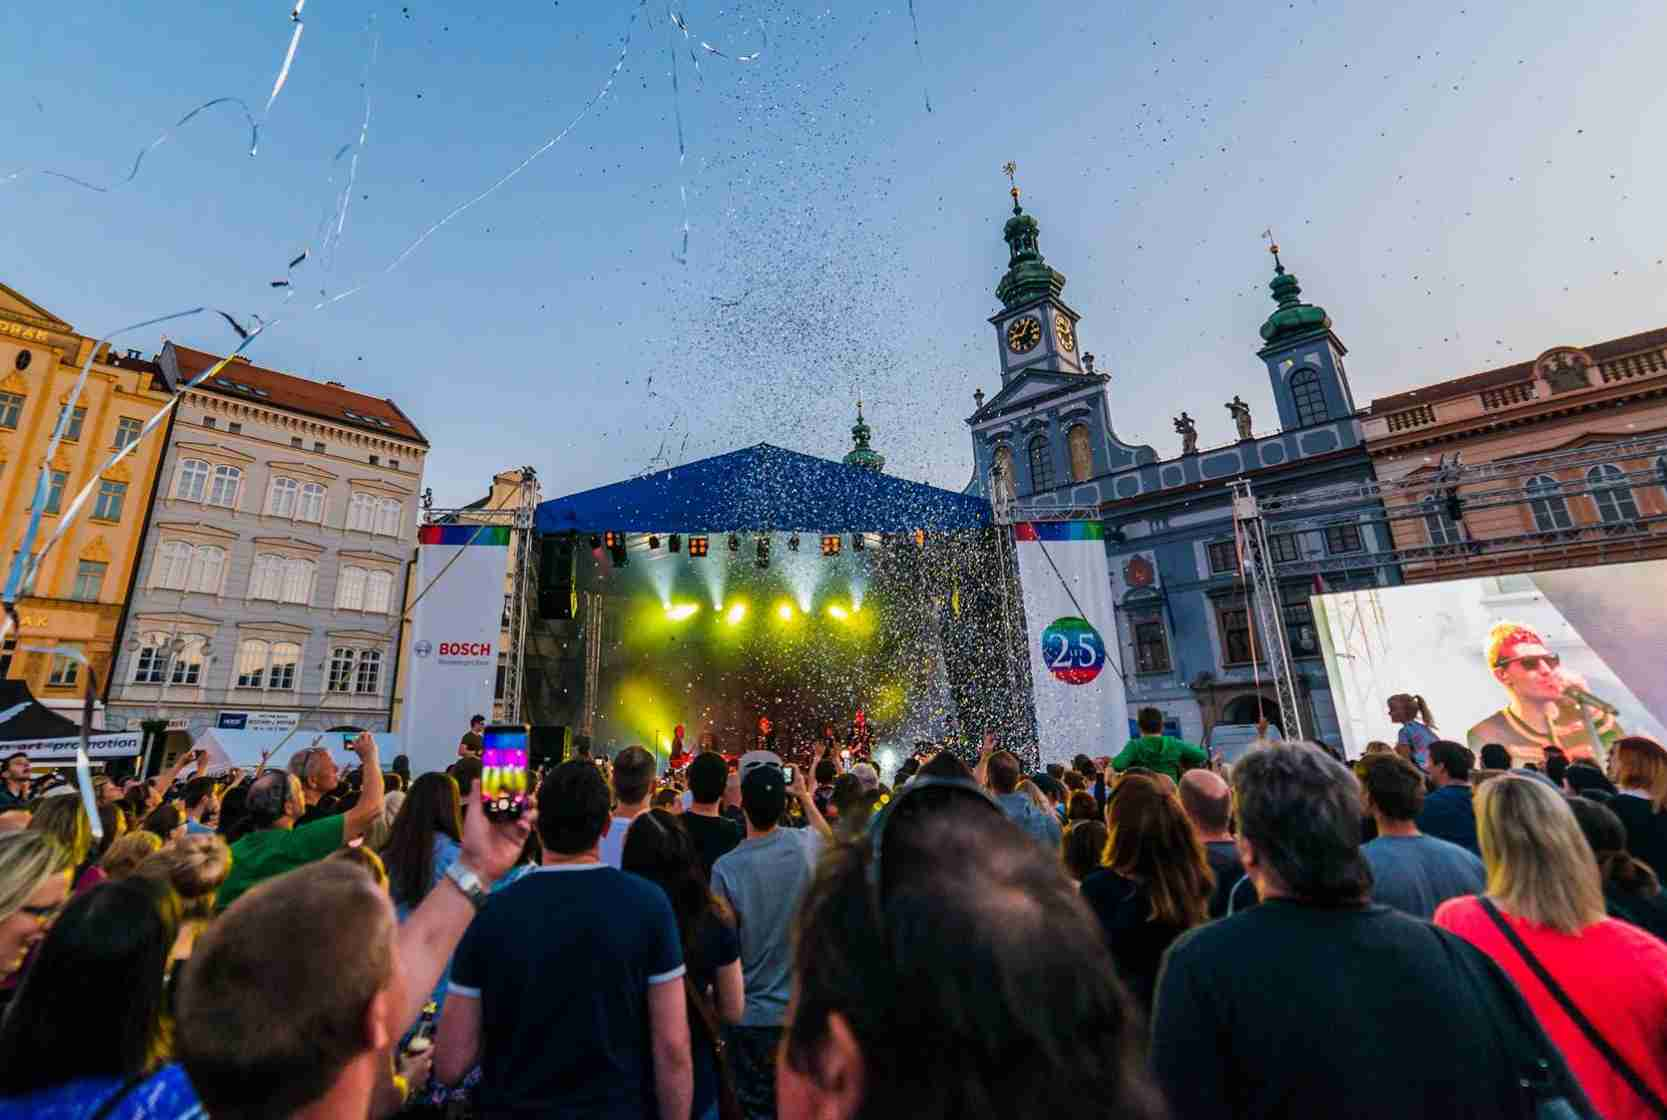 (Czech) BOSCHský OPEN AIR FESTIVAL 2017